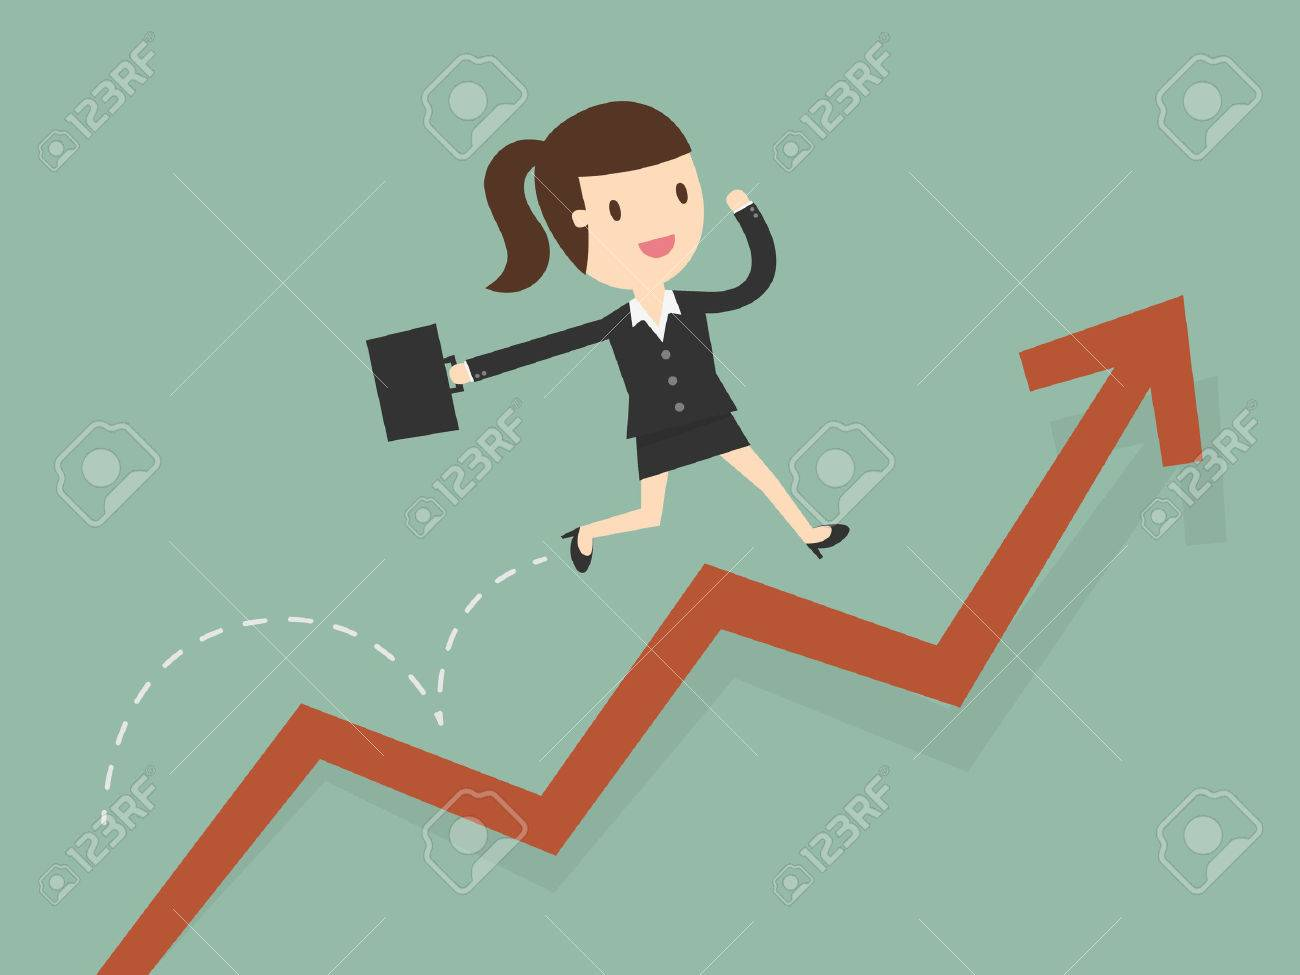 business woman jump over growing chart - 53139138